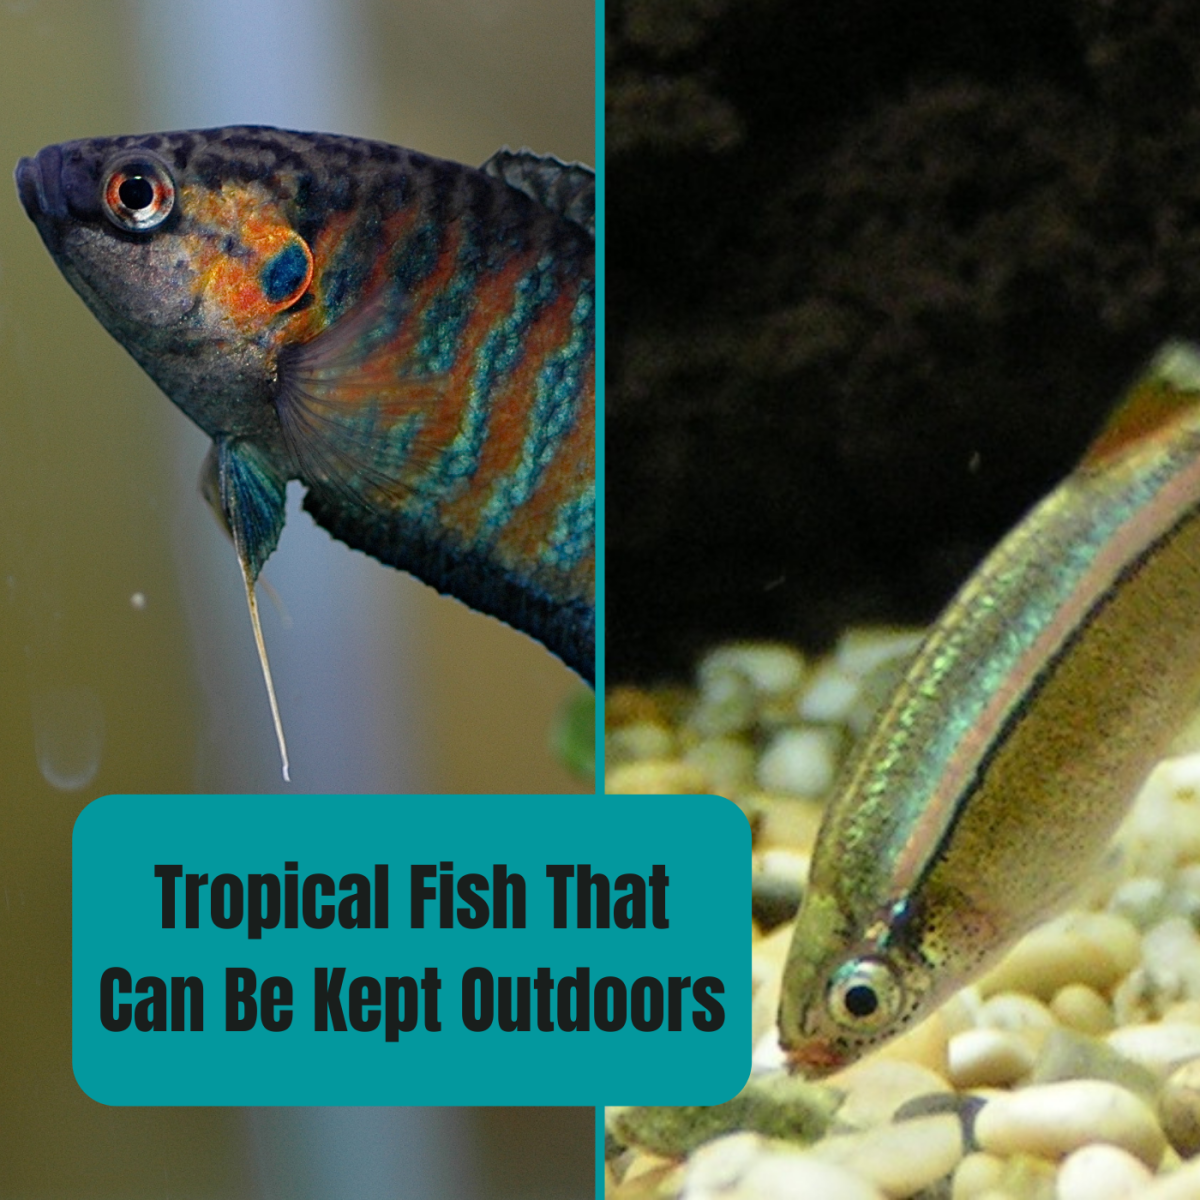 Paradise fish (left) and white cloud mountain minnows (right) are two examples of tropical fish that can actually be kept outside in the warmer months.